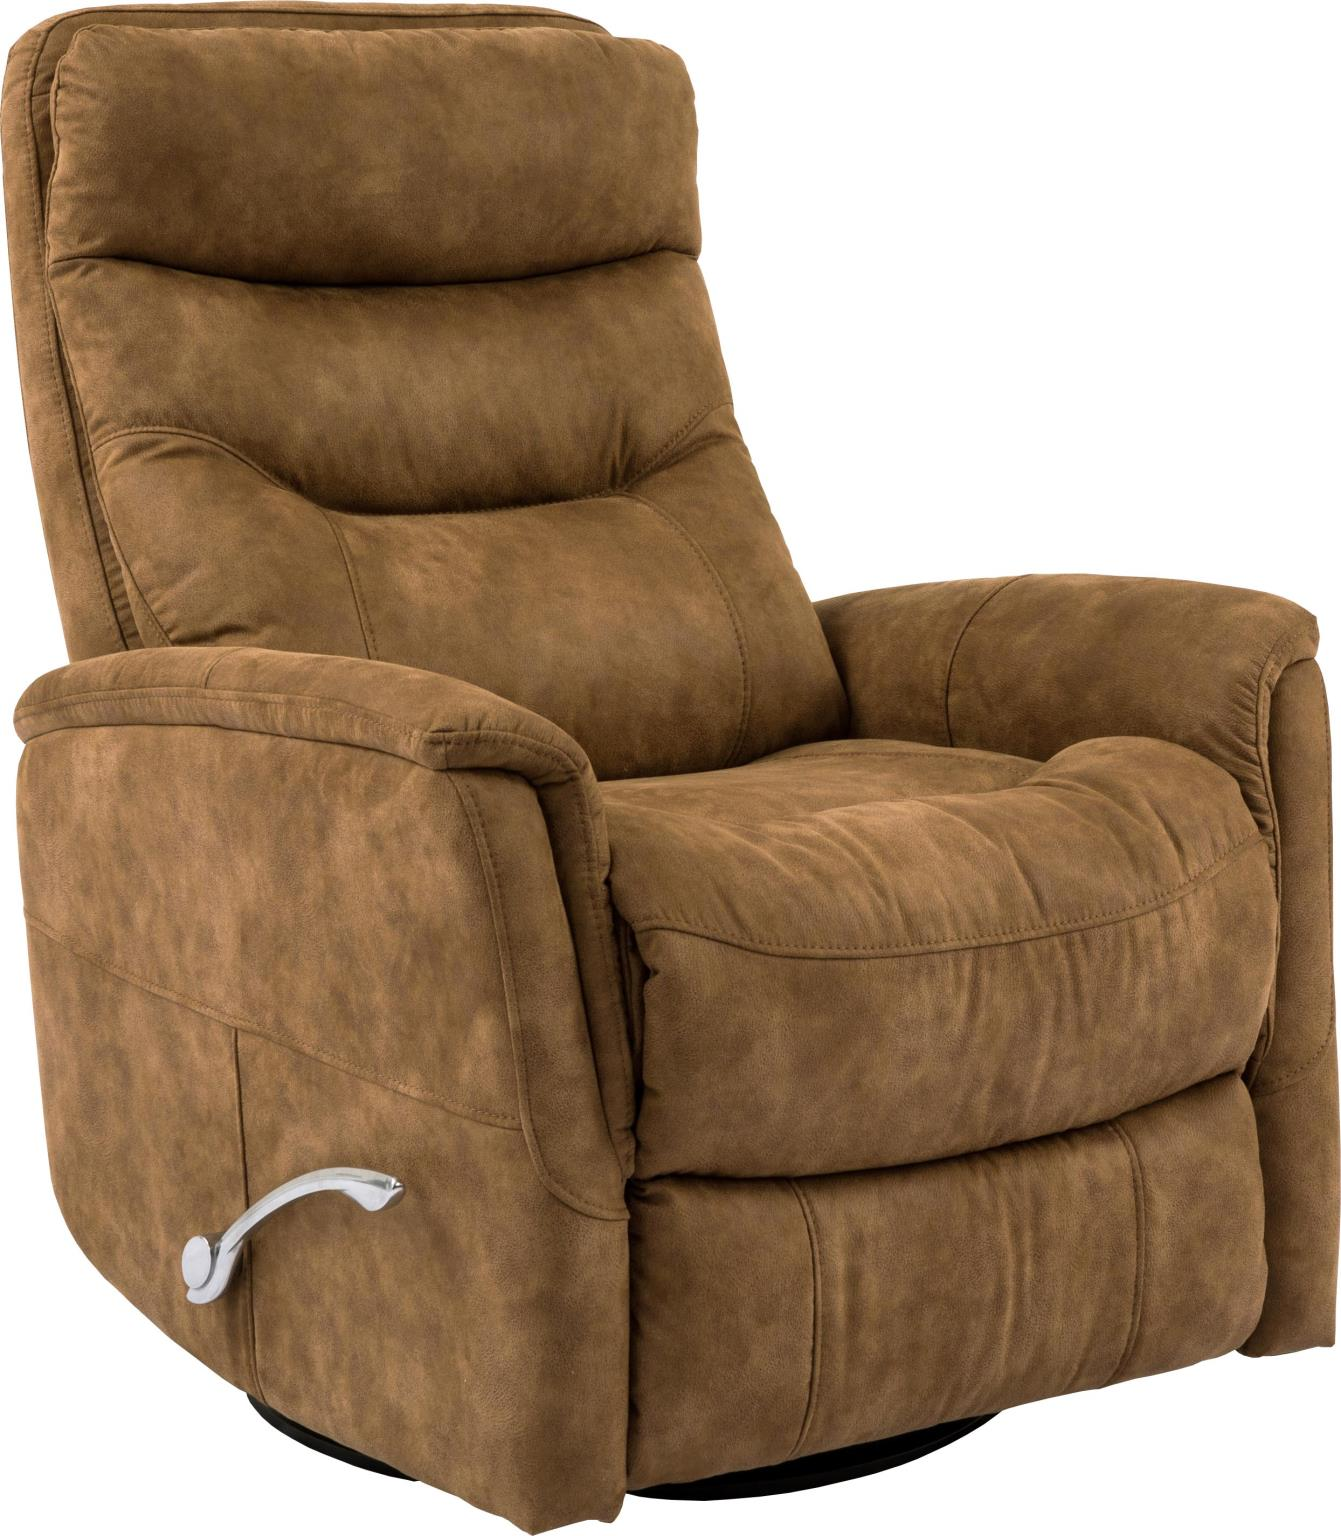 Gemini Autumn Swivel Glider Recliner By Parker House